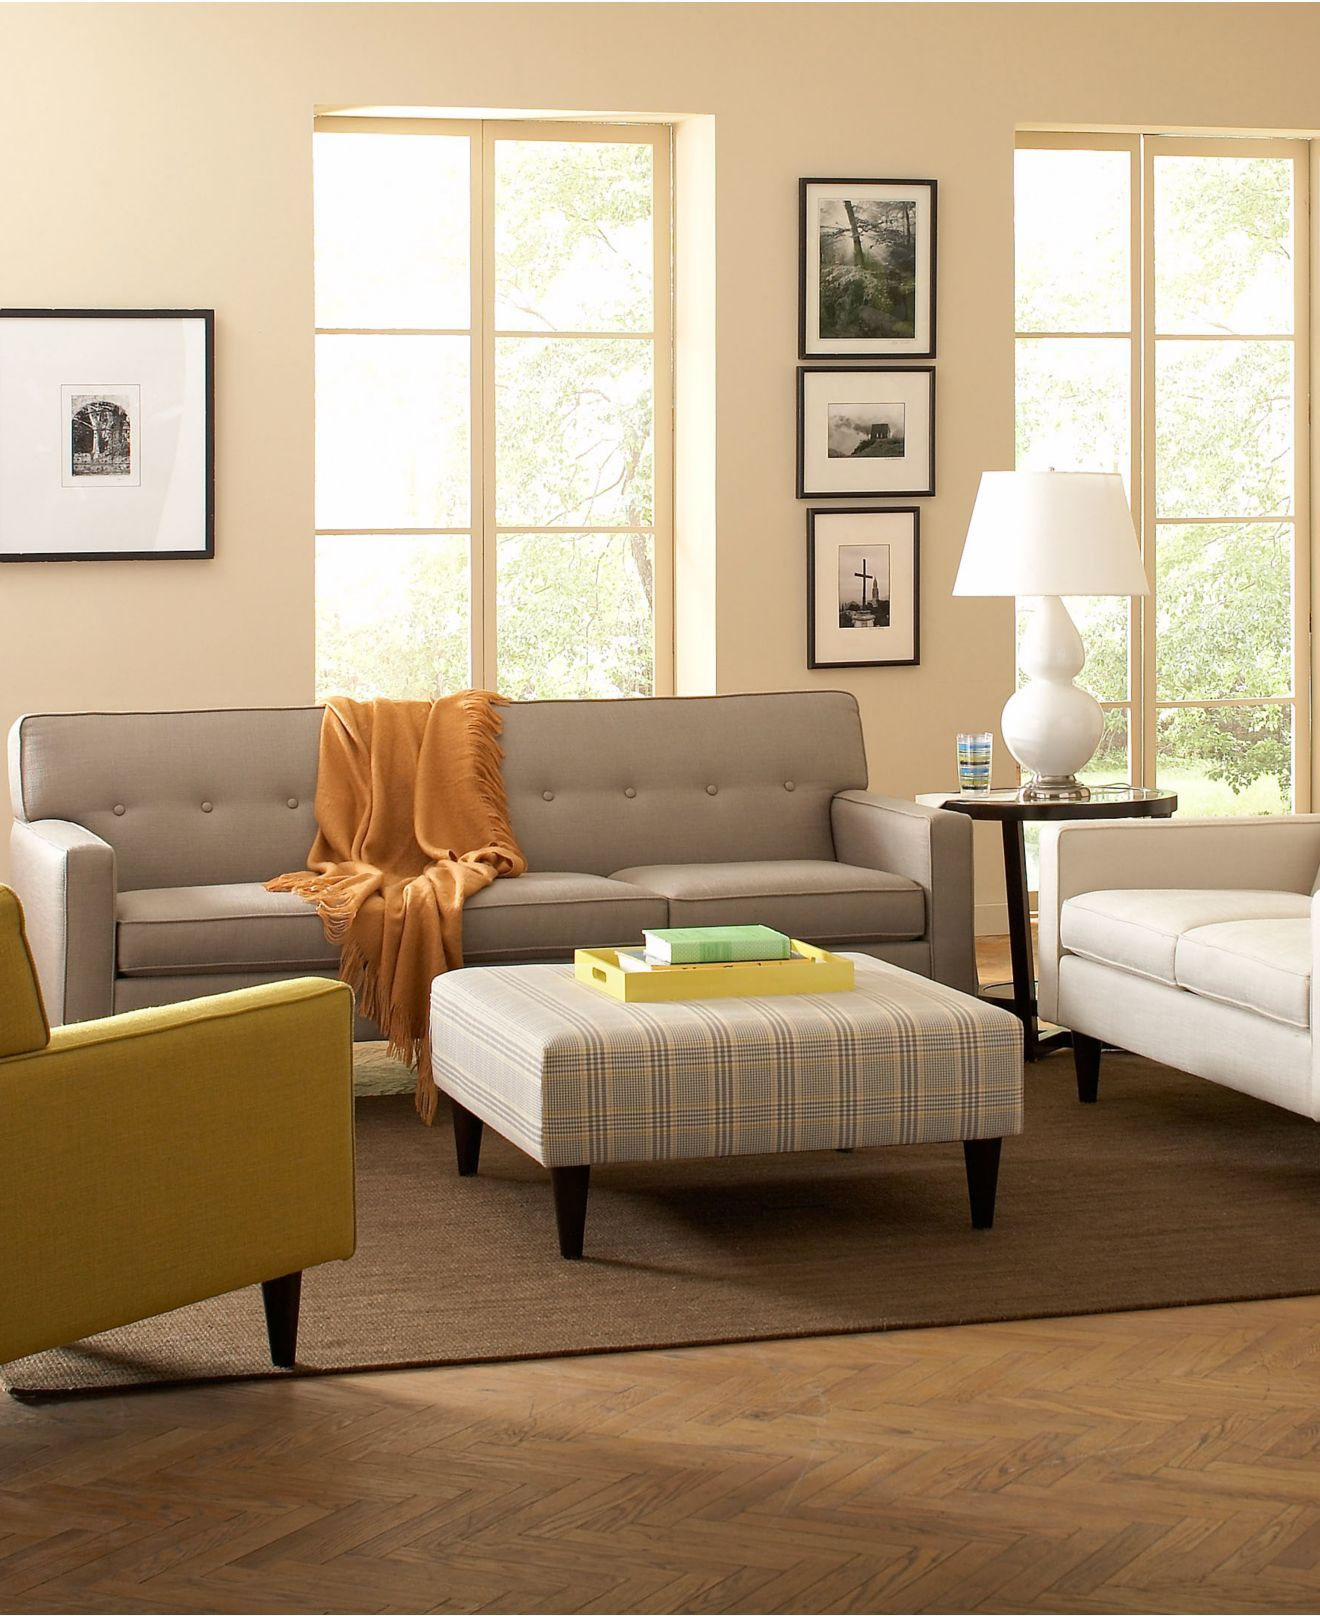 Clare Fabric Living Room Furniture Sets & Pieces - Sofas ...